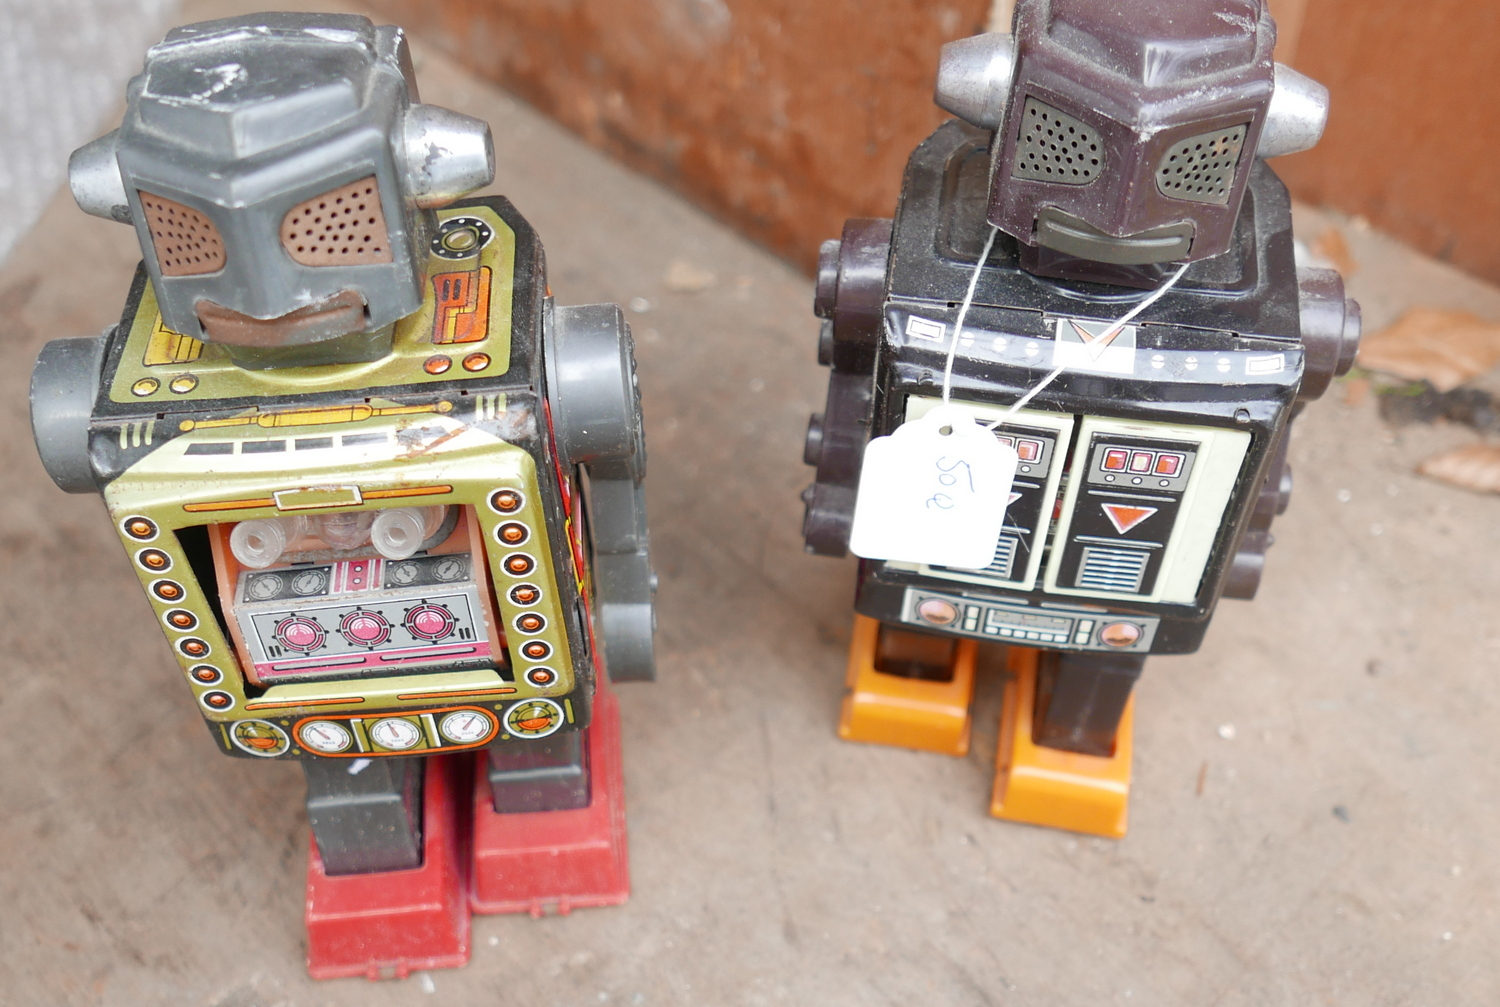 Pair of Vintage Toy Robots.